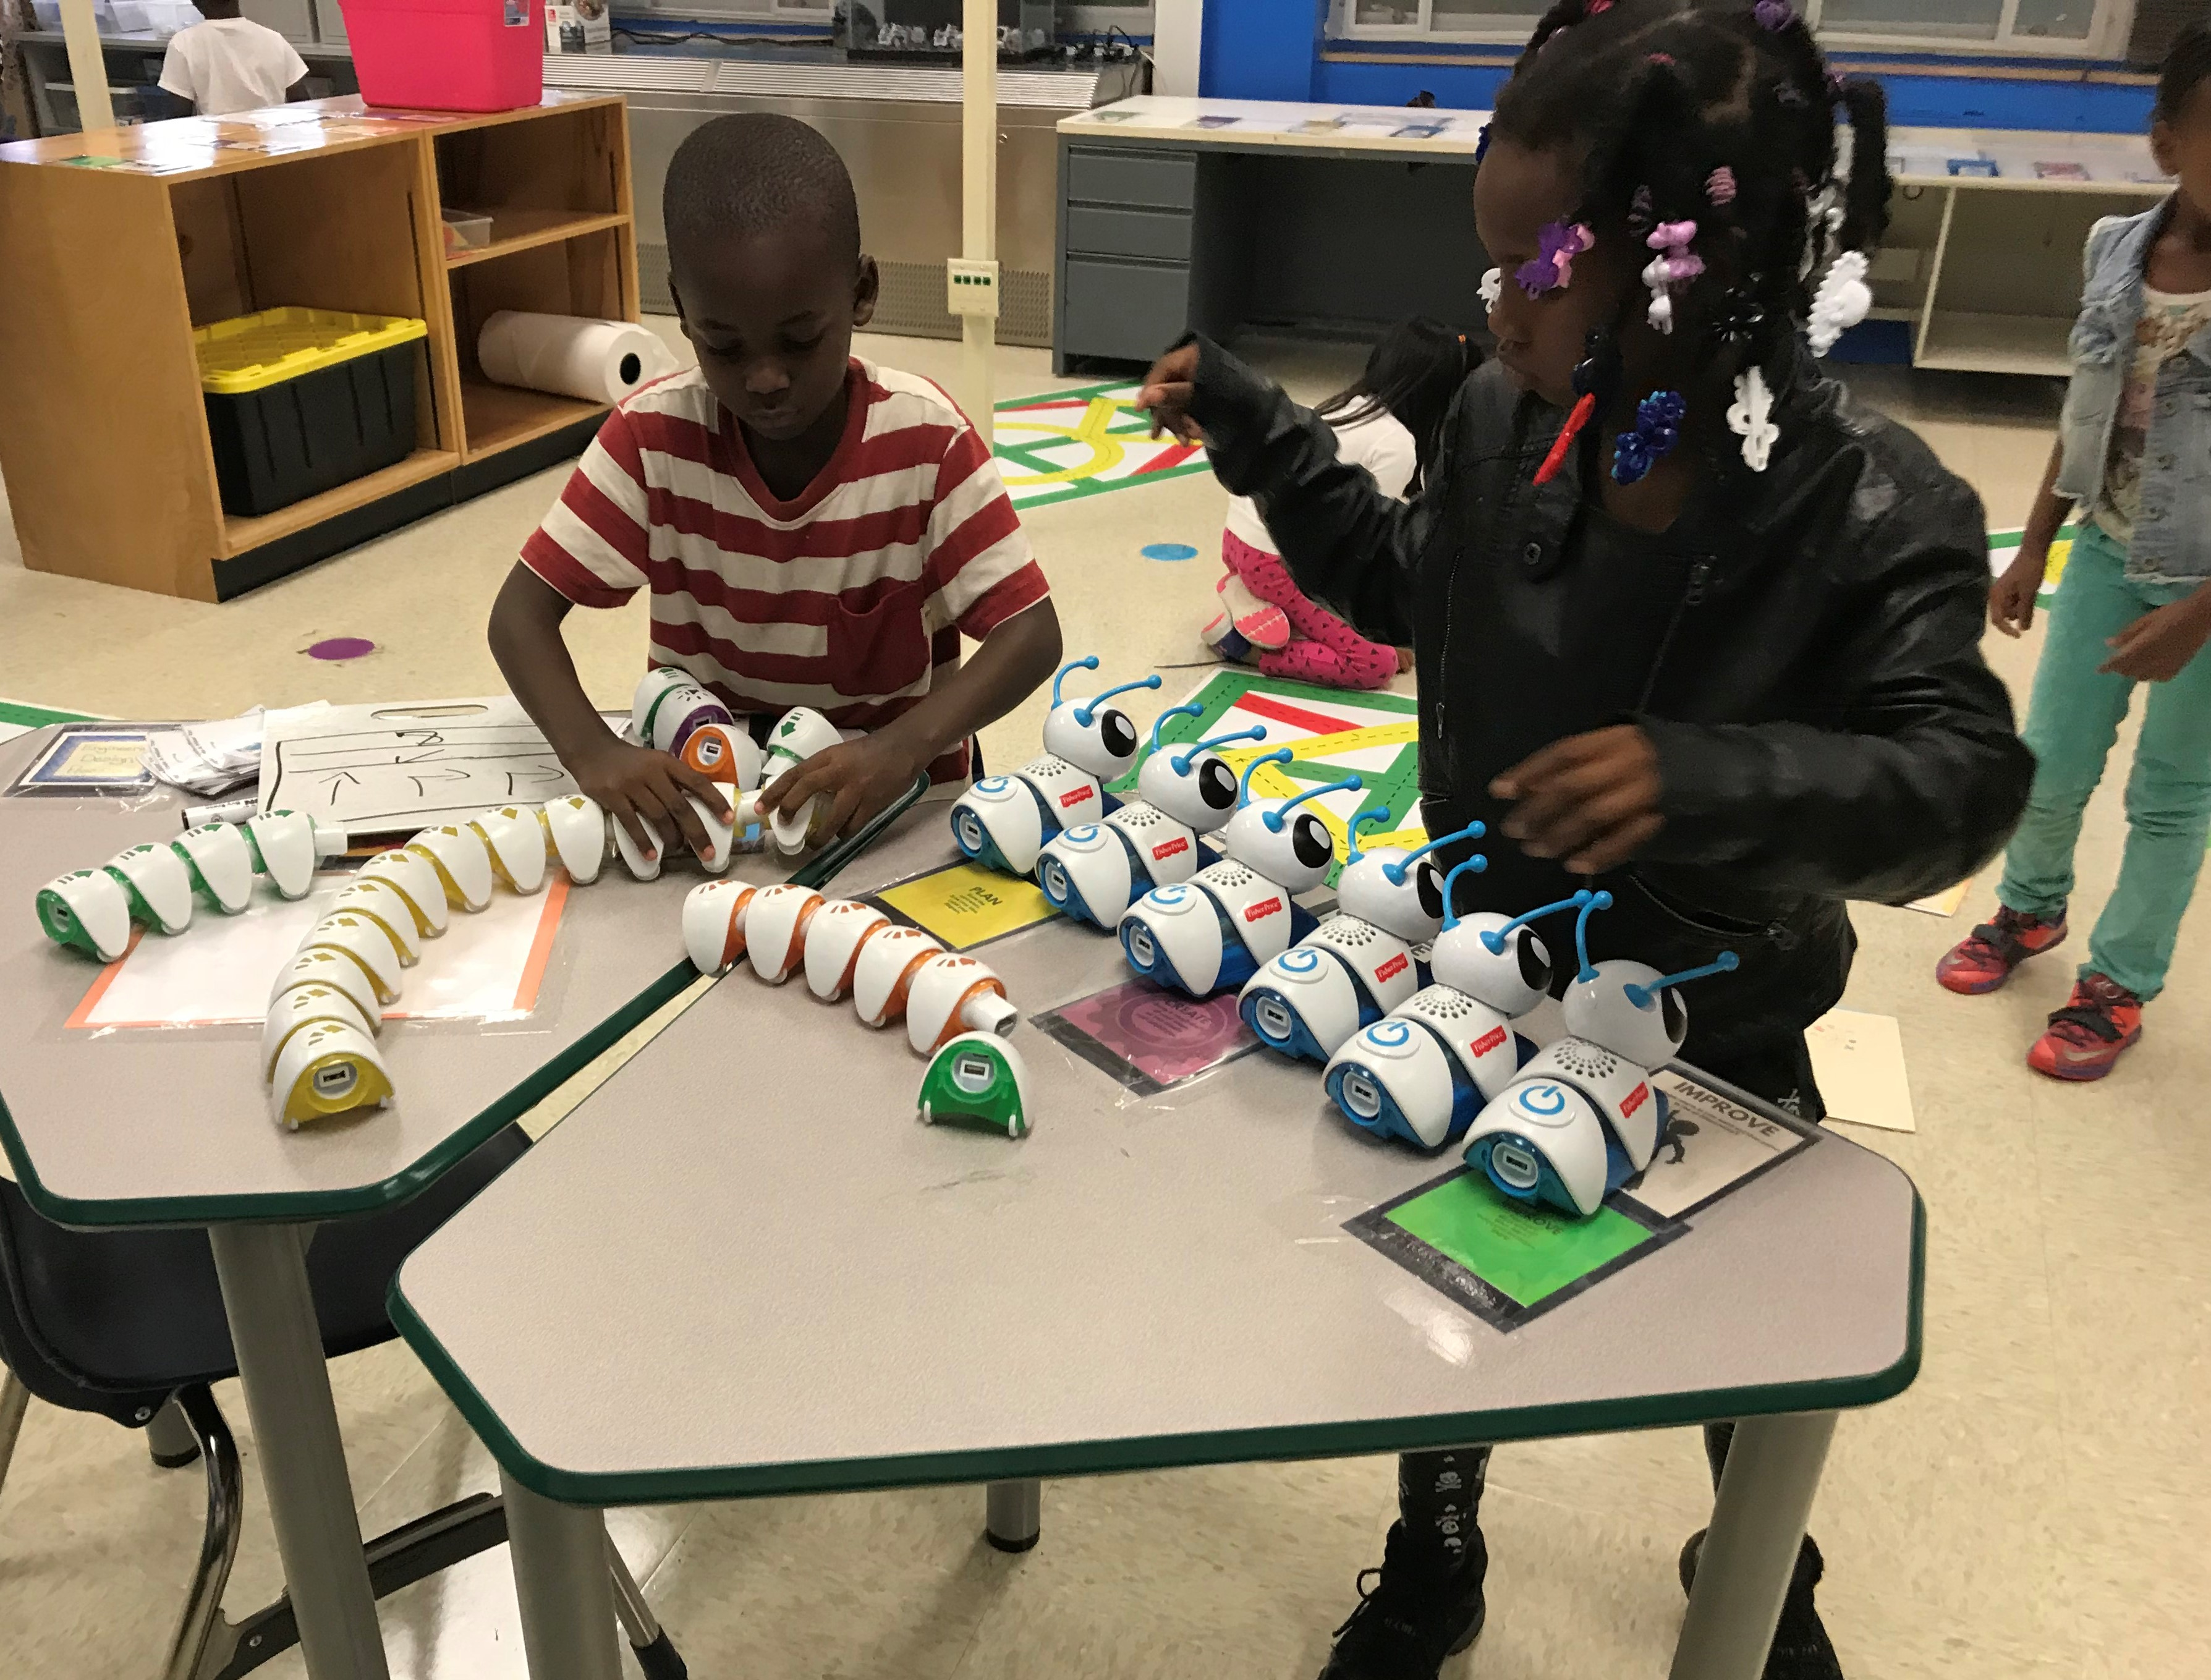 Students in Katie Barnhart's Coding and Robotics lab, at Green Magnet Academy, wrap up a lesson using 'Code-a-Pillars,' segmented robots that provide instruction in writing code and algorithms.